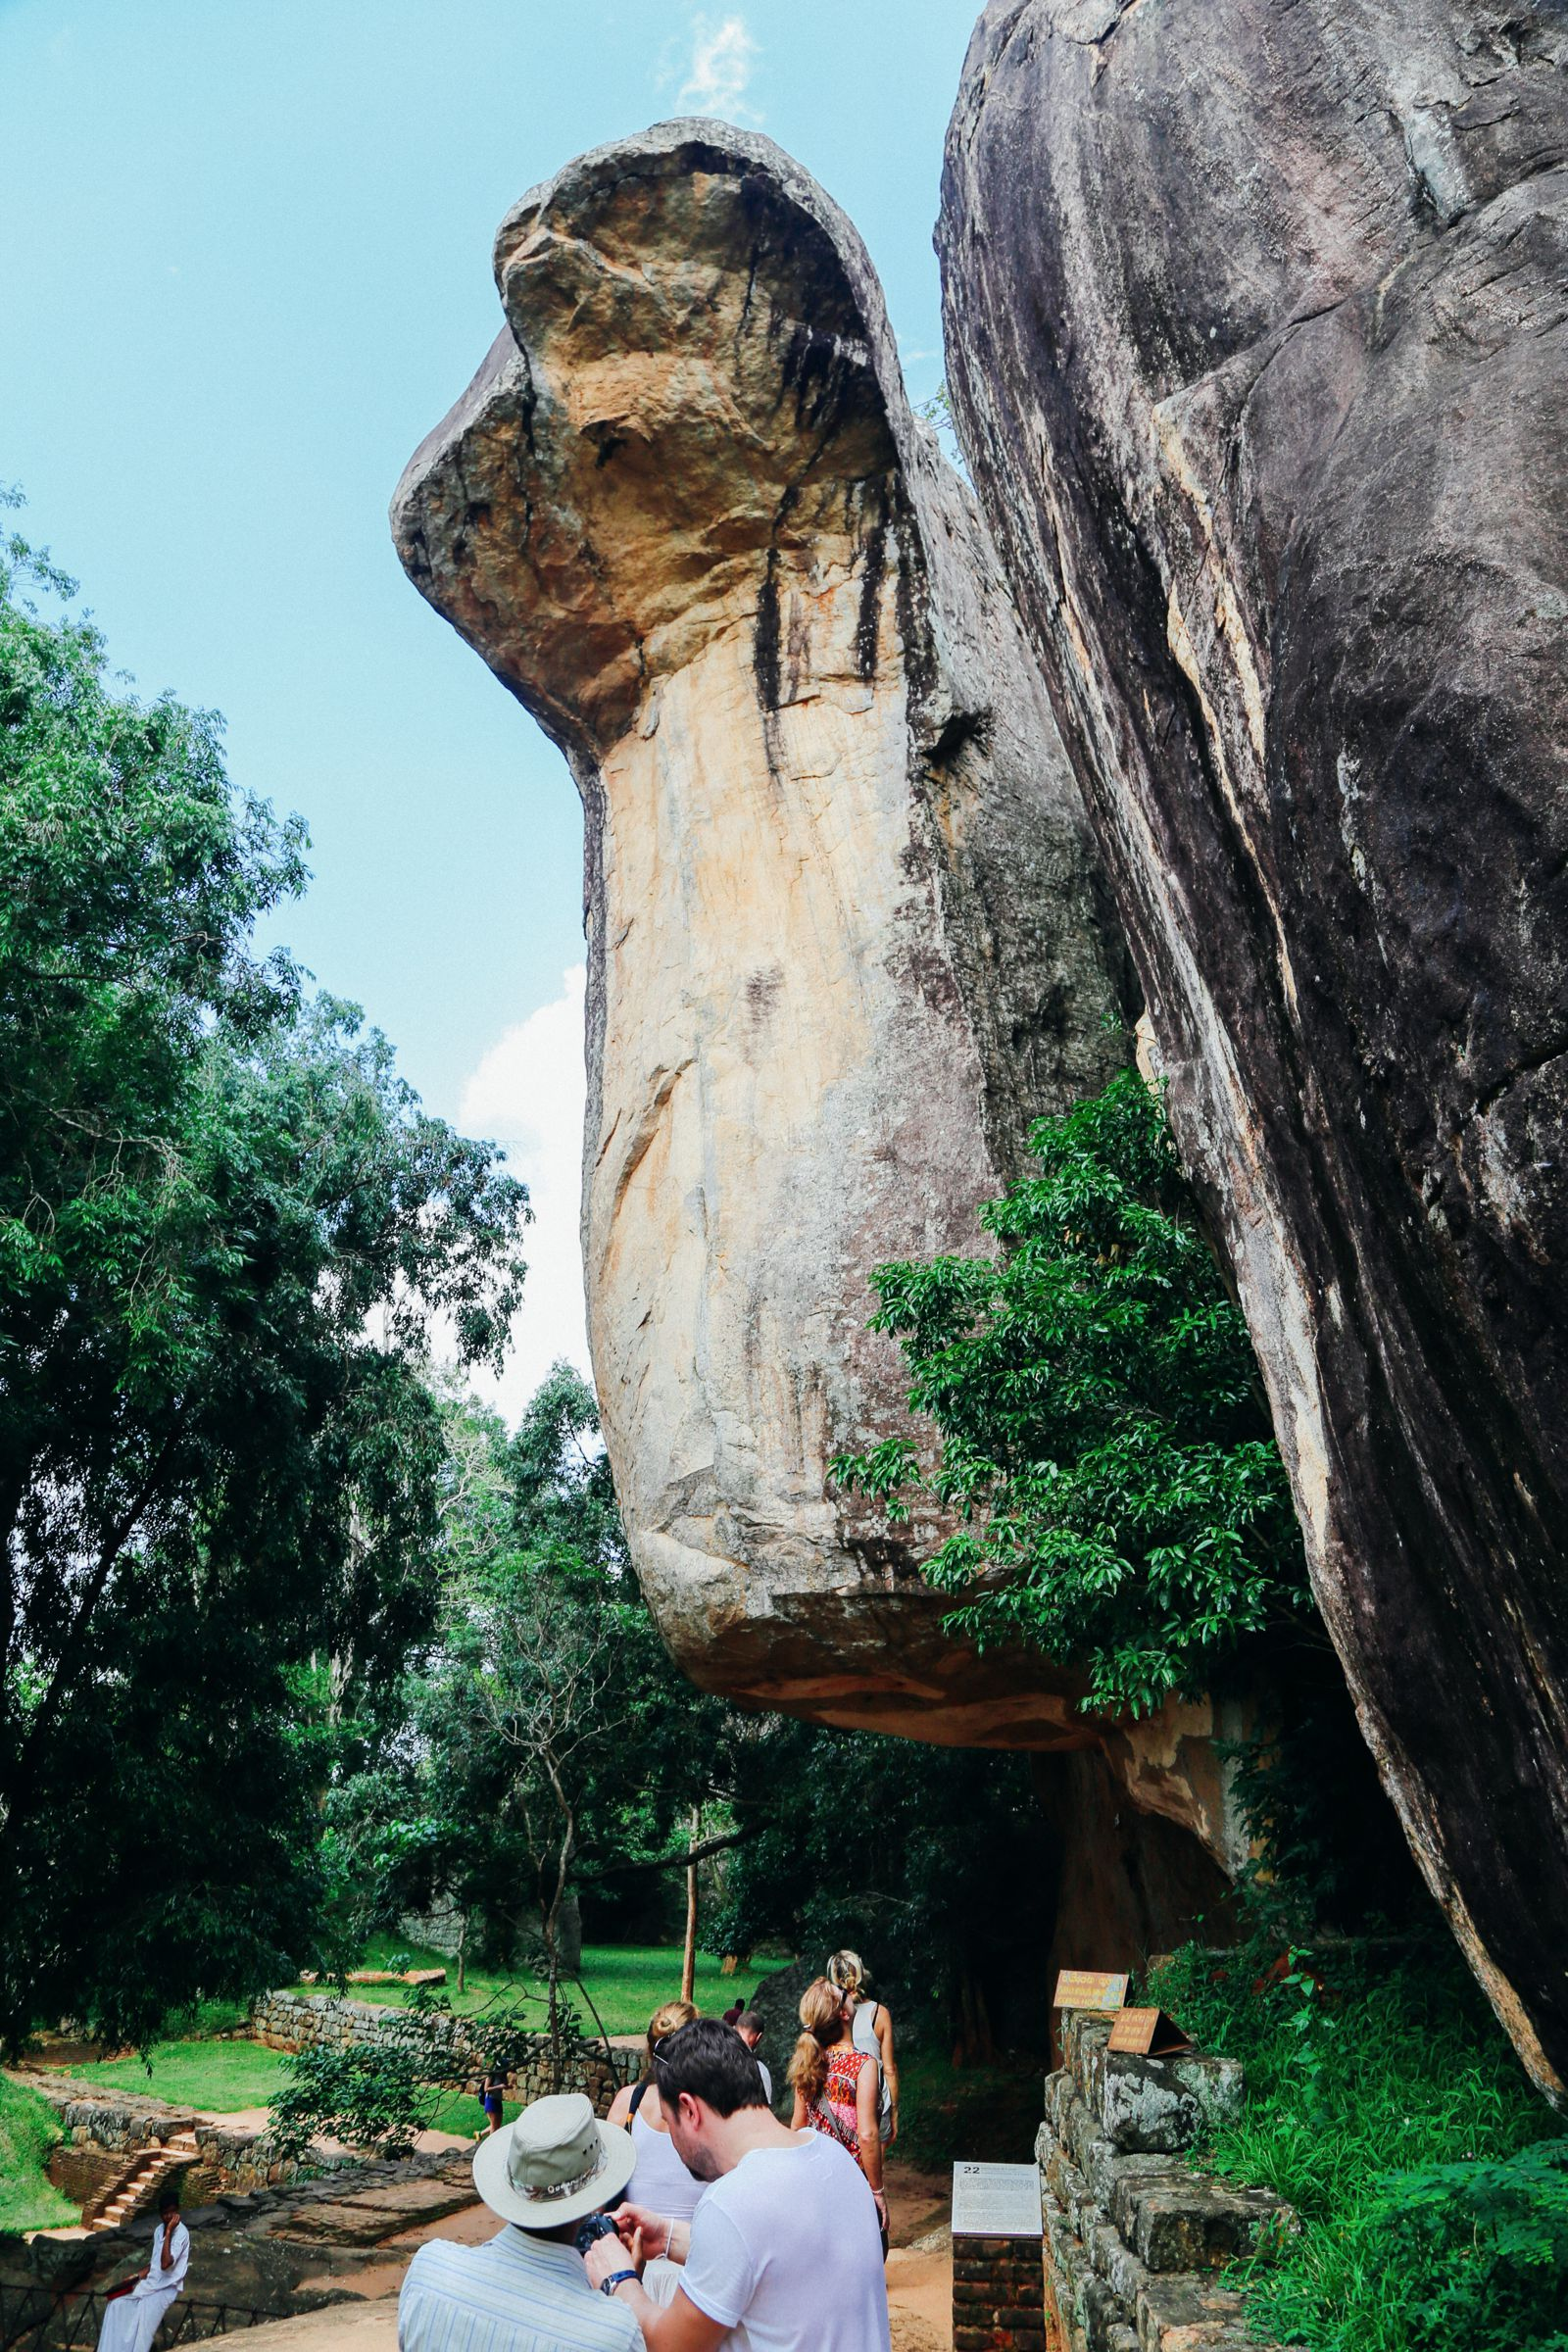 The Complete Guide To Climbing Sri Lanka's UNESCO World Heritage Site Of Sigiriya - Lion Rock (69)